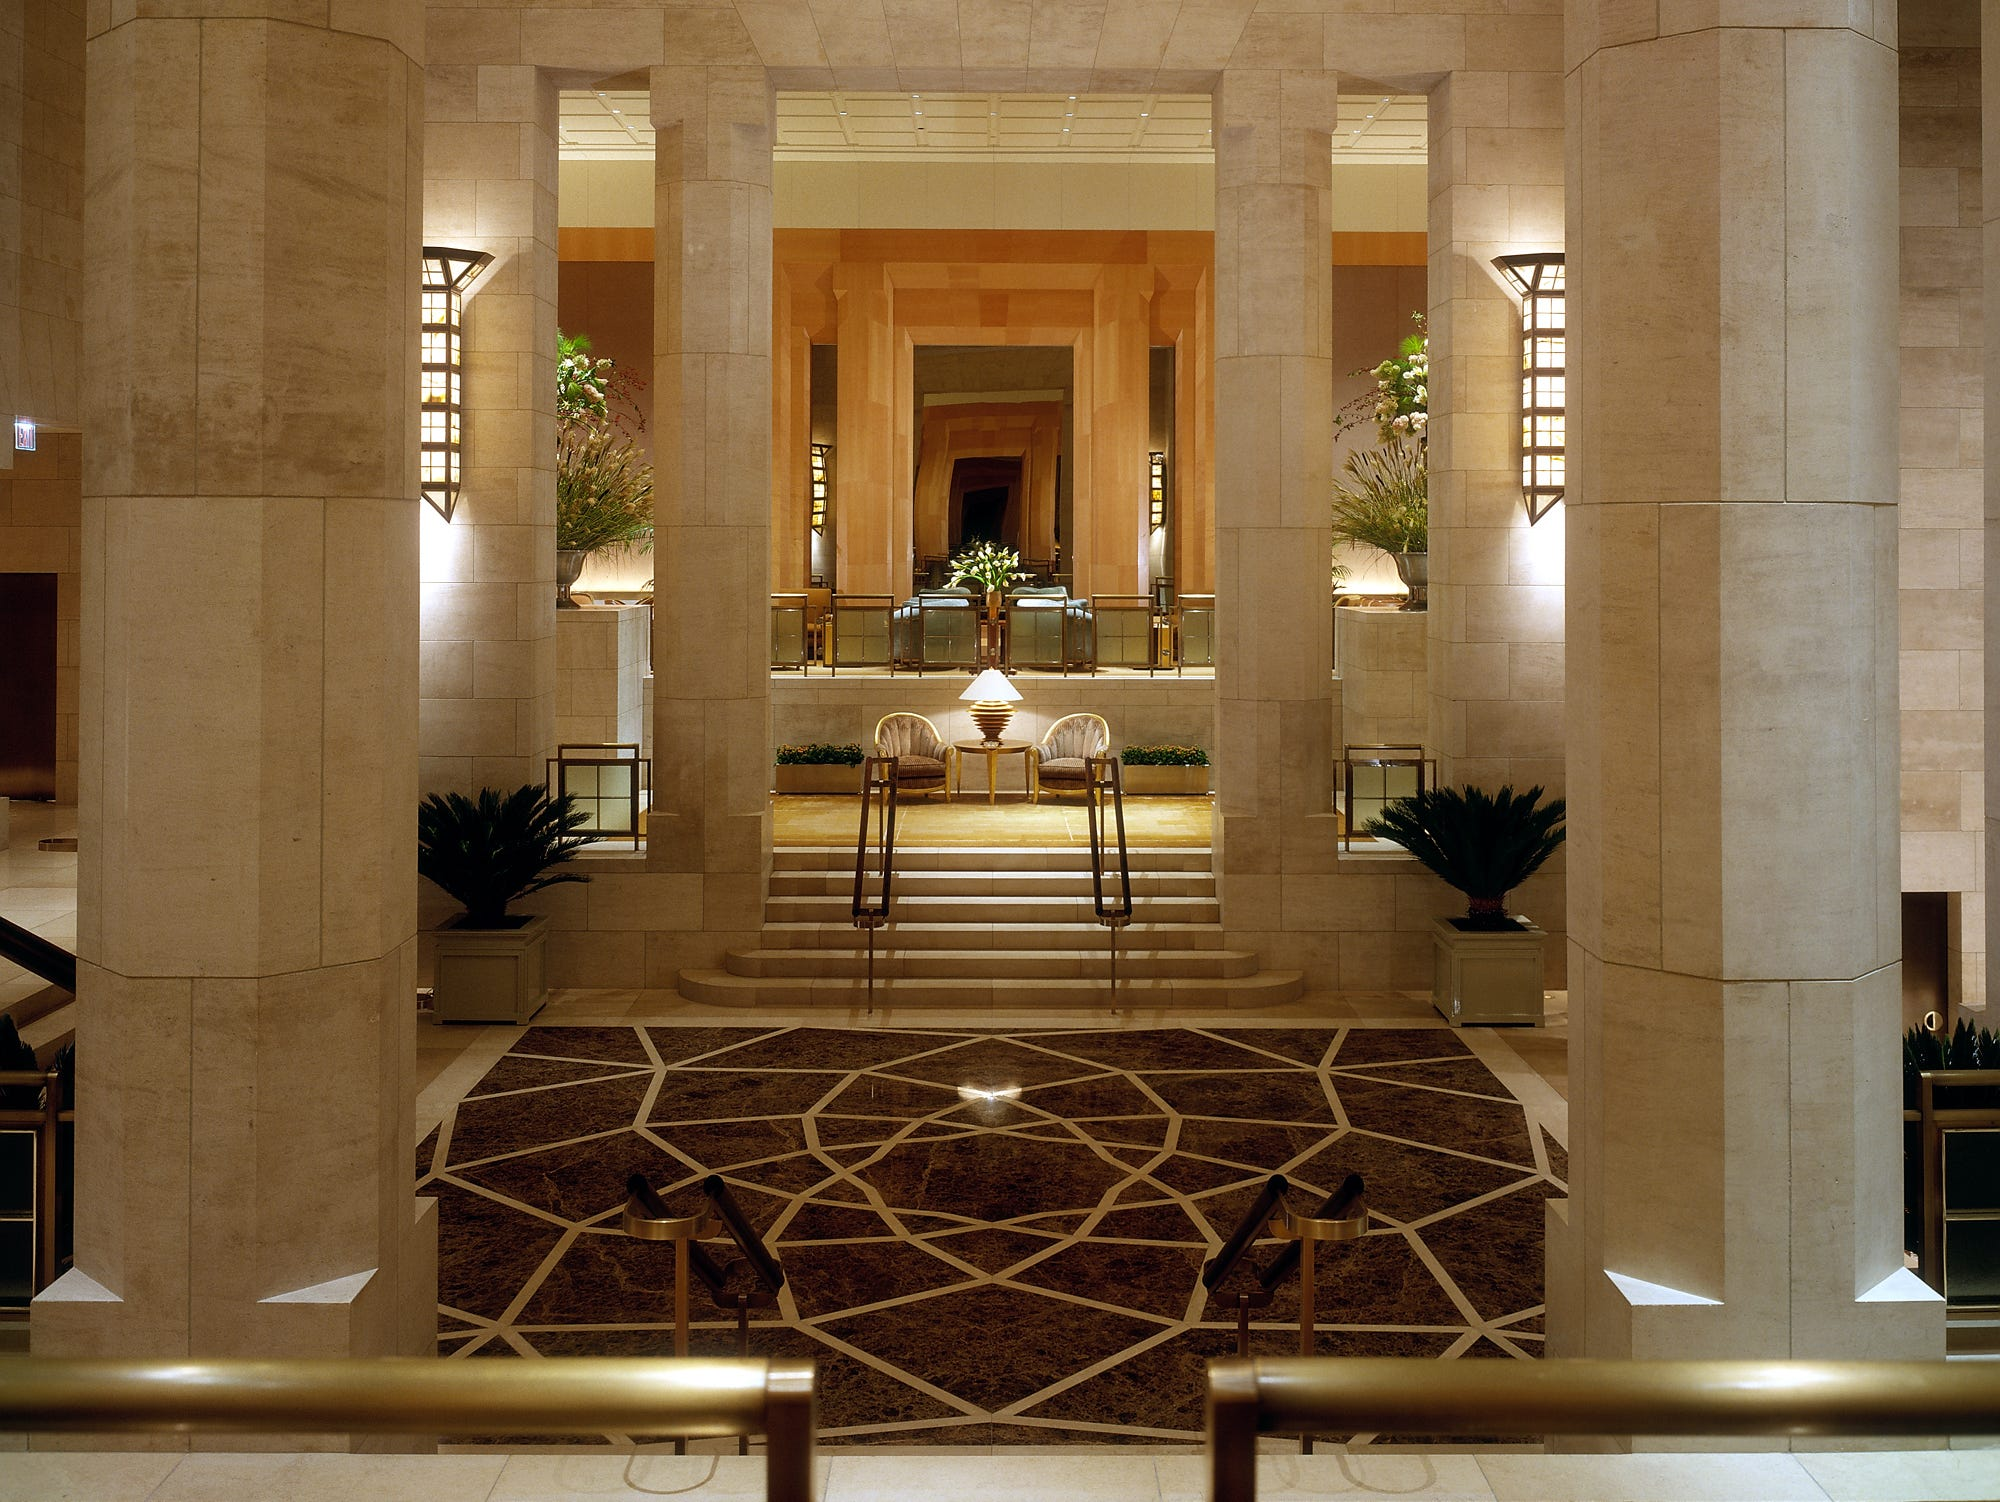 The I.M. Pei-designed lobby of Four Seasons Hotel, New York, is a temple of architecture.